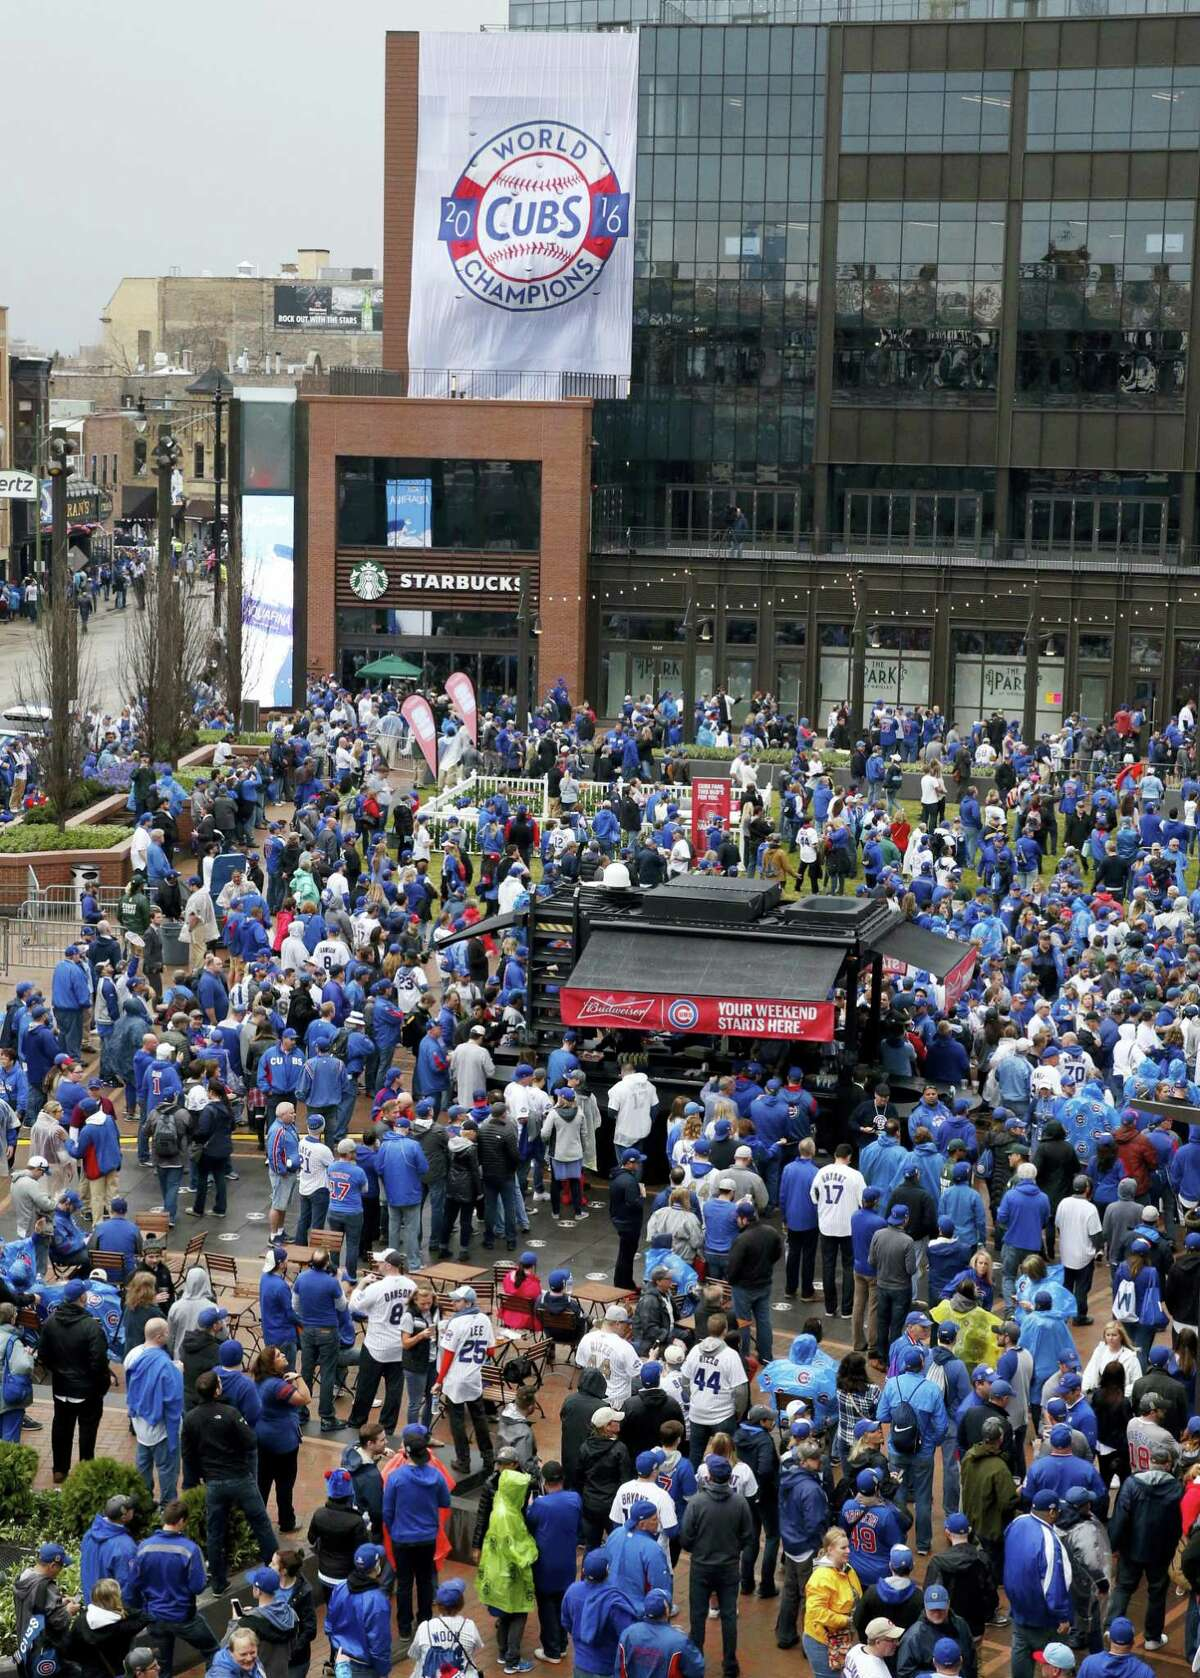 Fans gather outside in the Park at Wrigley before a baseball game between the Chicago Cubs and the Los Angeles Dodgers on home opening day April 10, 2017 in Chicago.